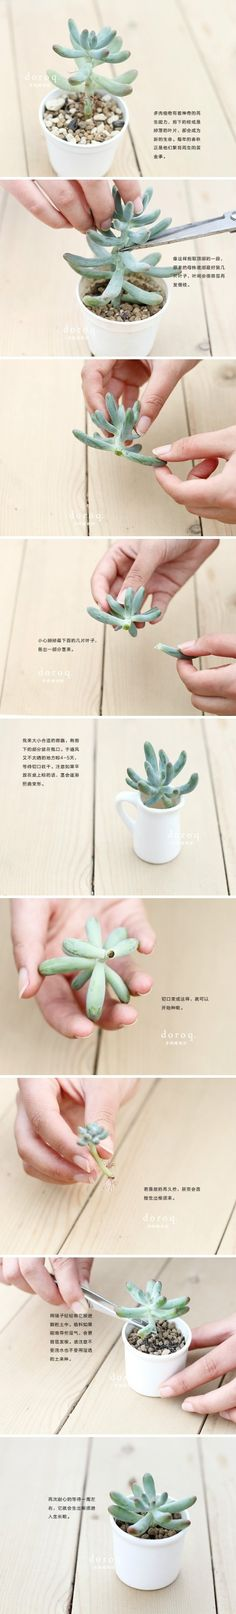 """Okay, I have this succulent, it's too tall, and I want to do this. I read pictures pretty good, but do you think # 5 says, """"leave in air"""" or """"put in water""""? :)"""